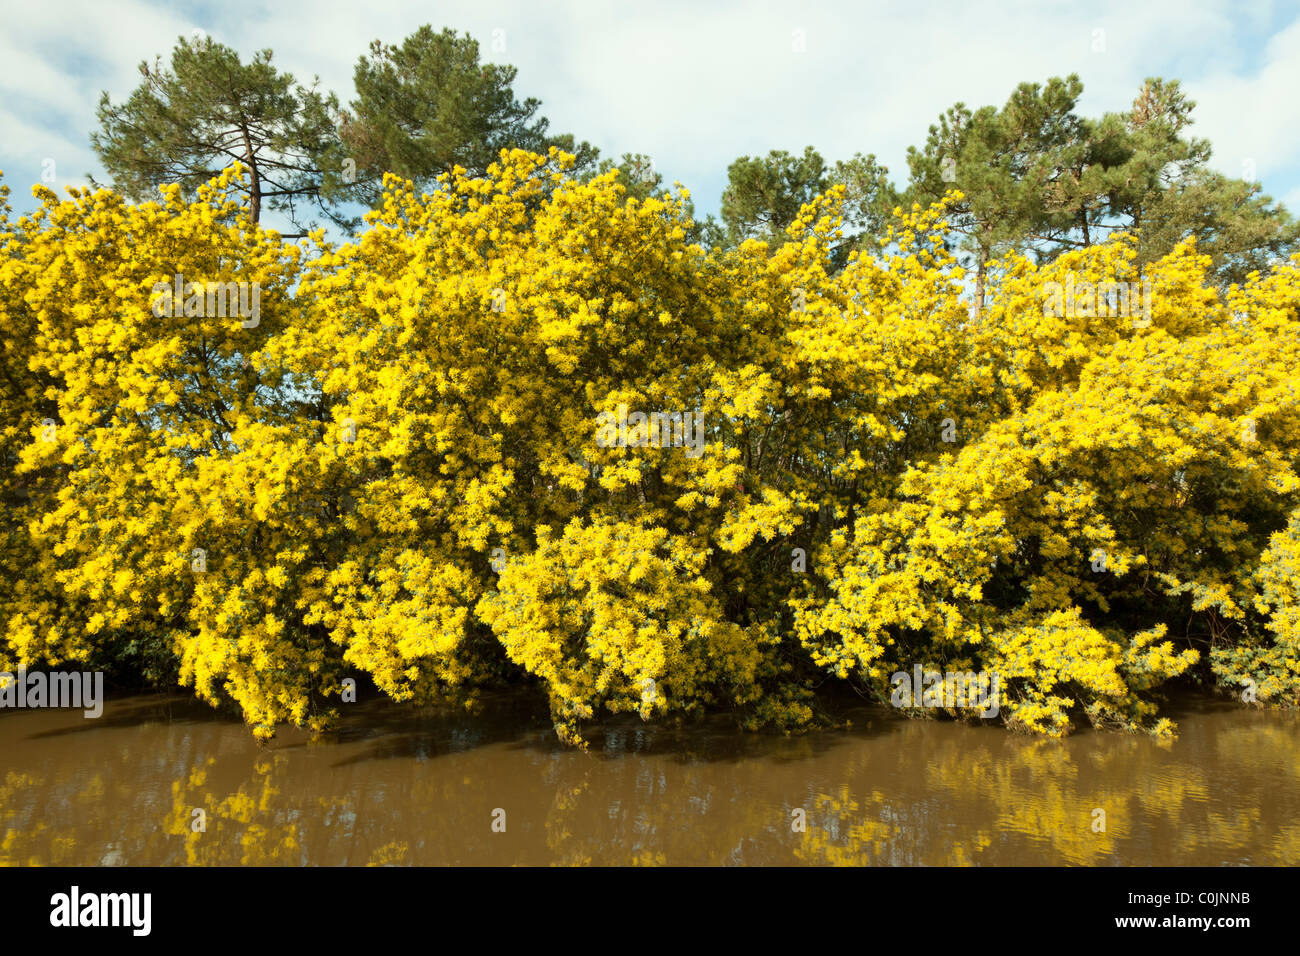 Flowering Acacia Trees Stock Photos Flowering Acacia Trees Stock